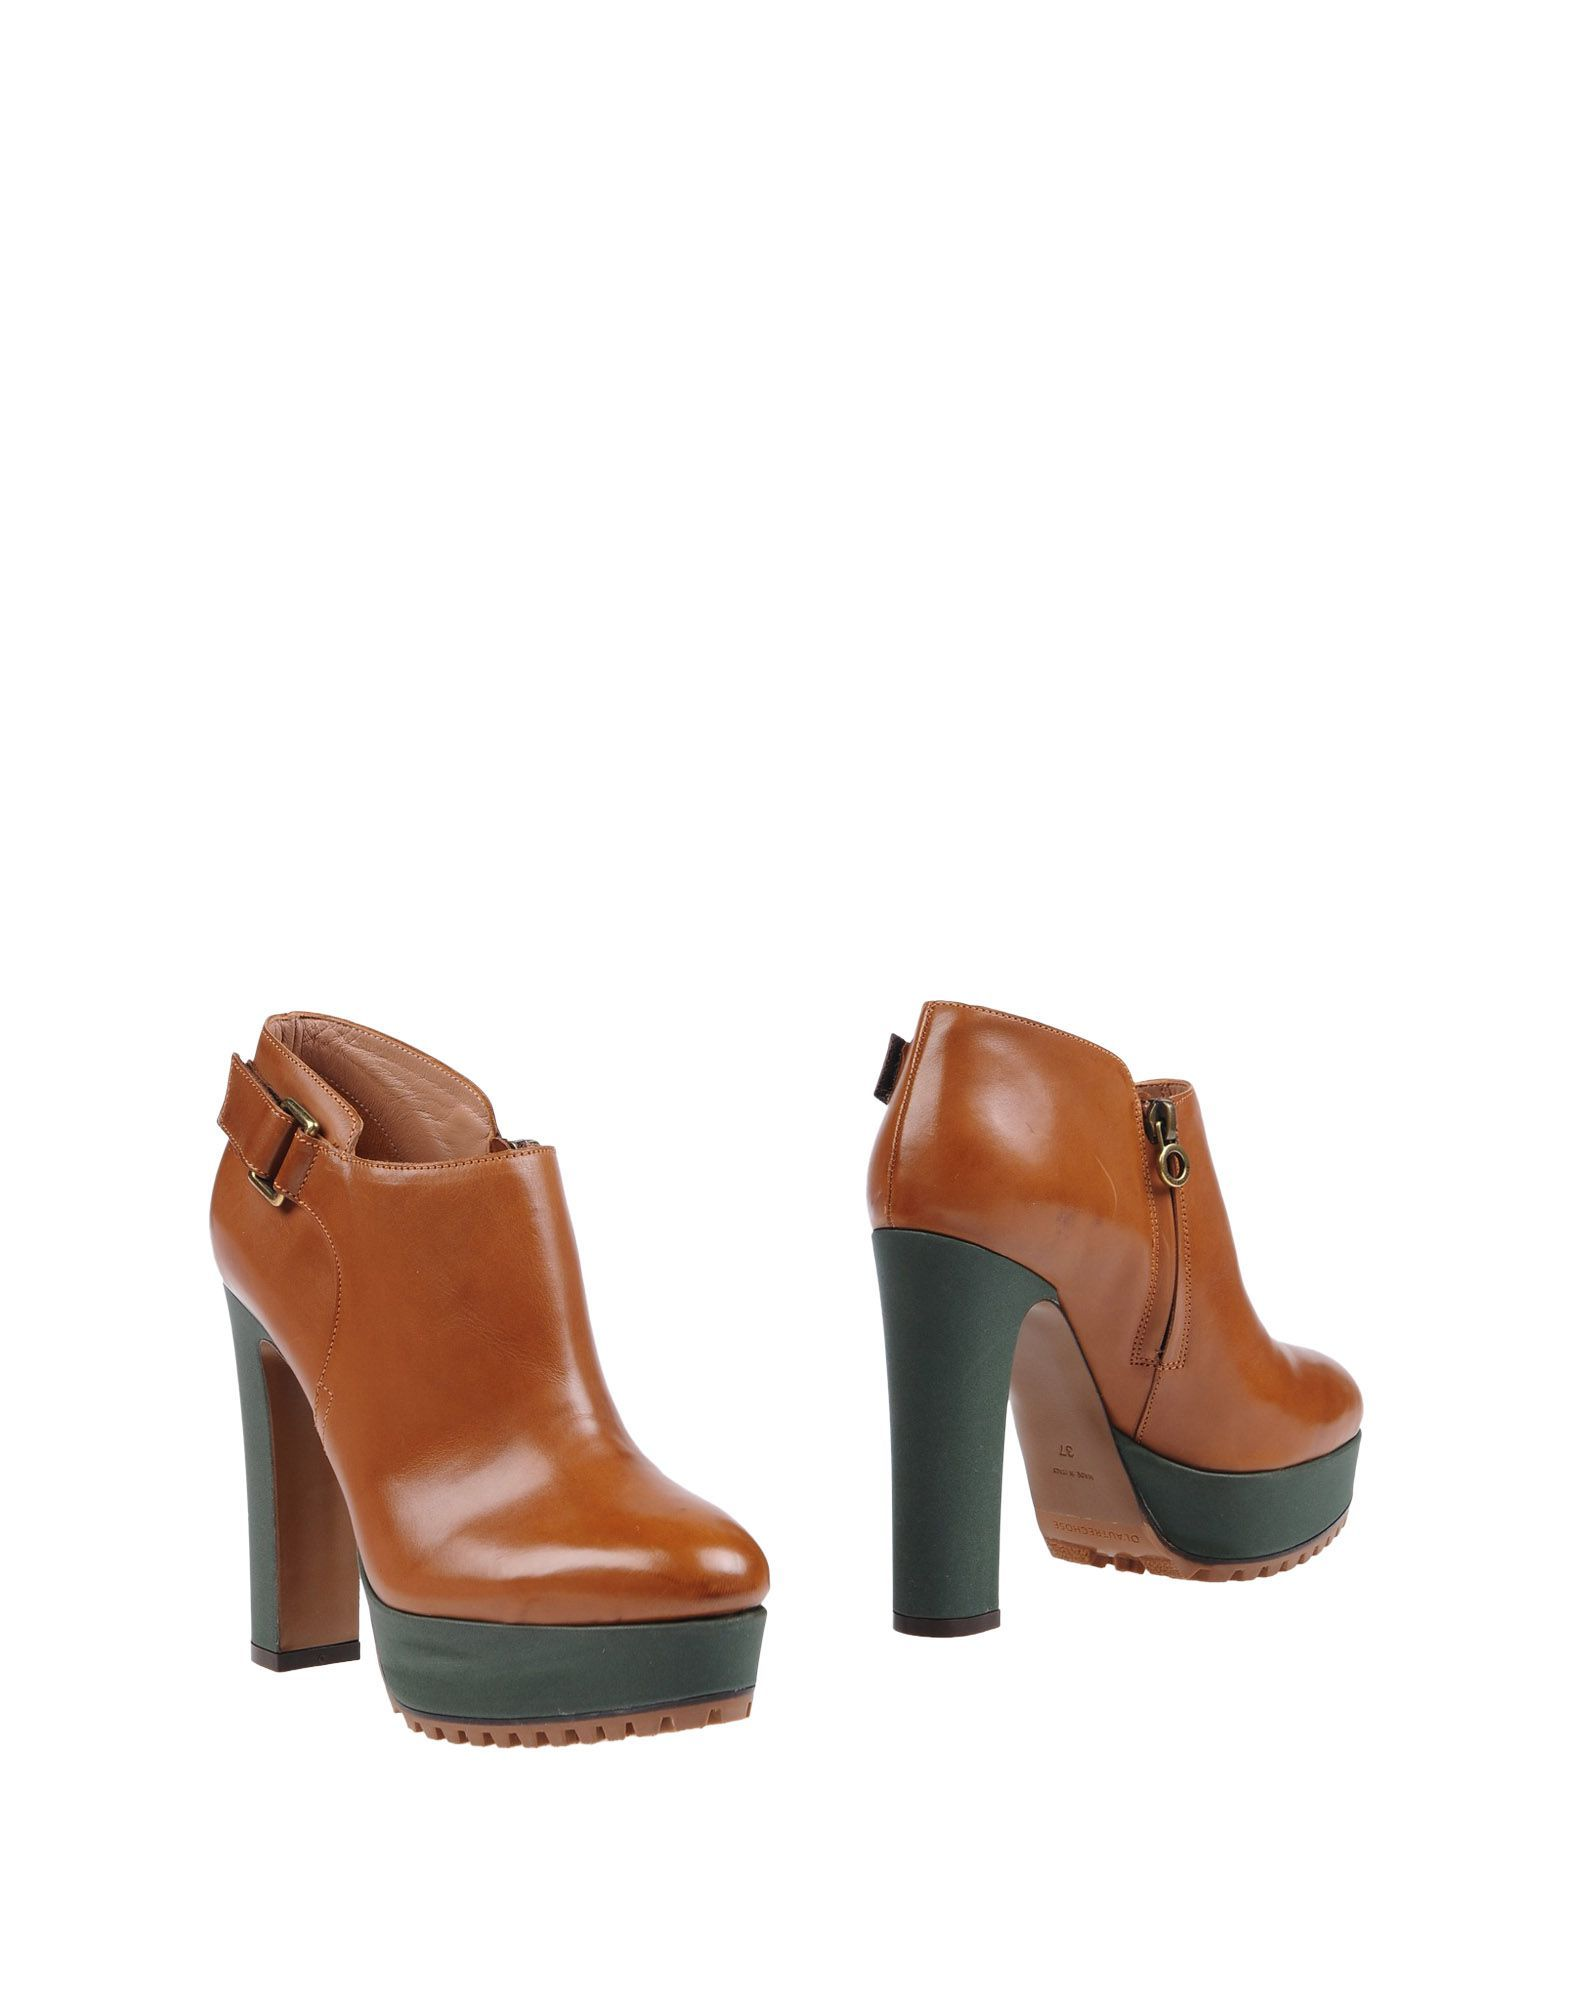 L' Autre Chose Brown Leather Ankle Boots